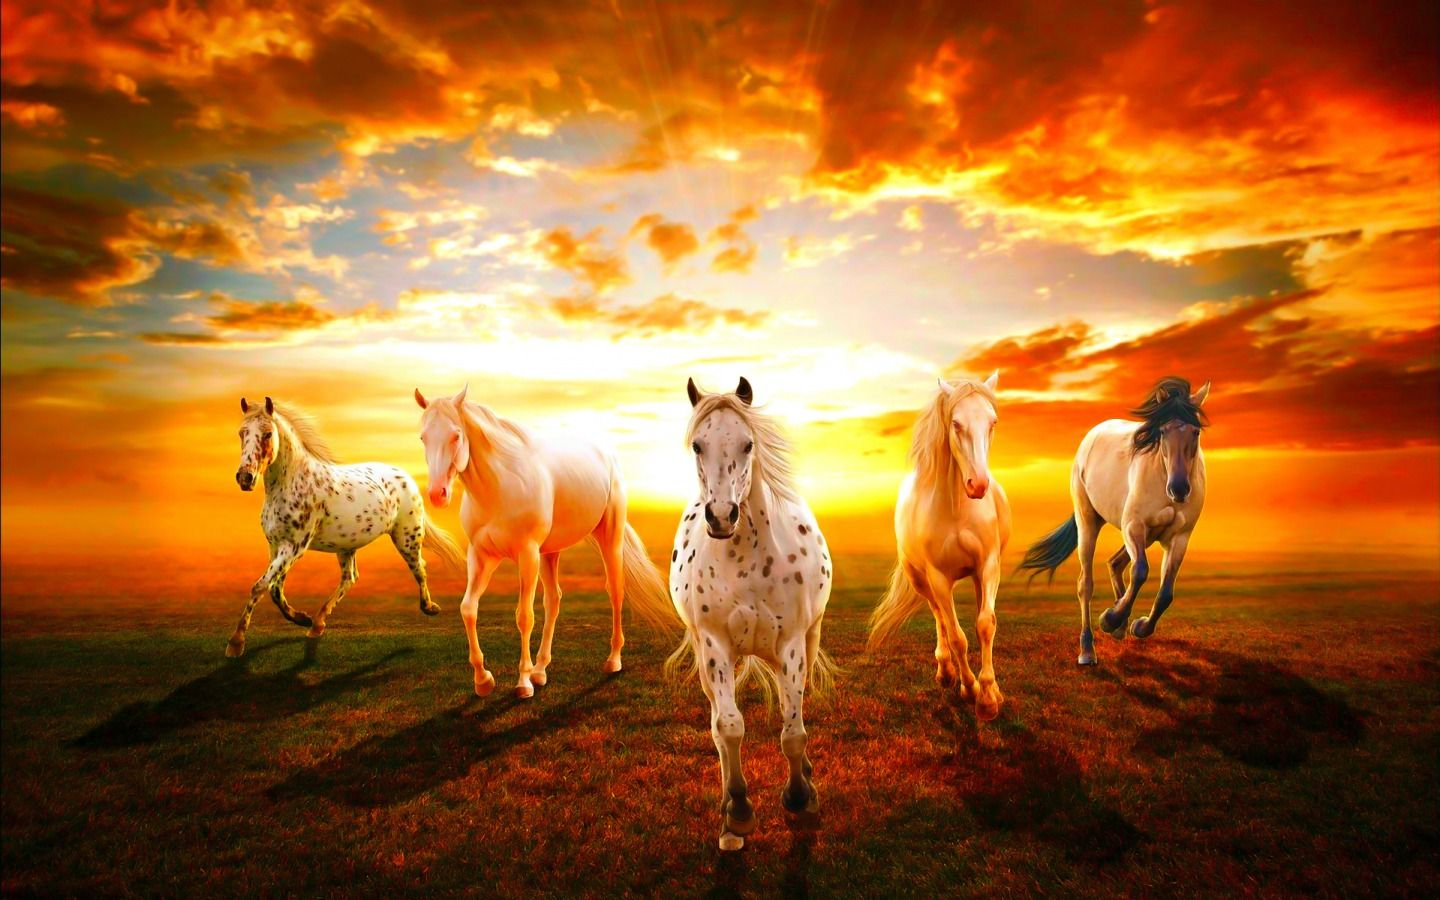 There are many stories of warfare in which a horse has